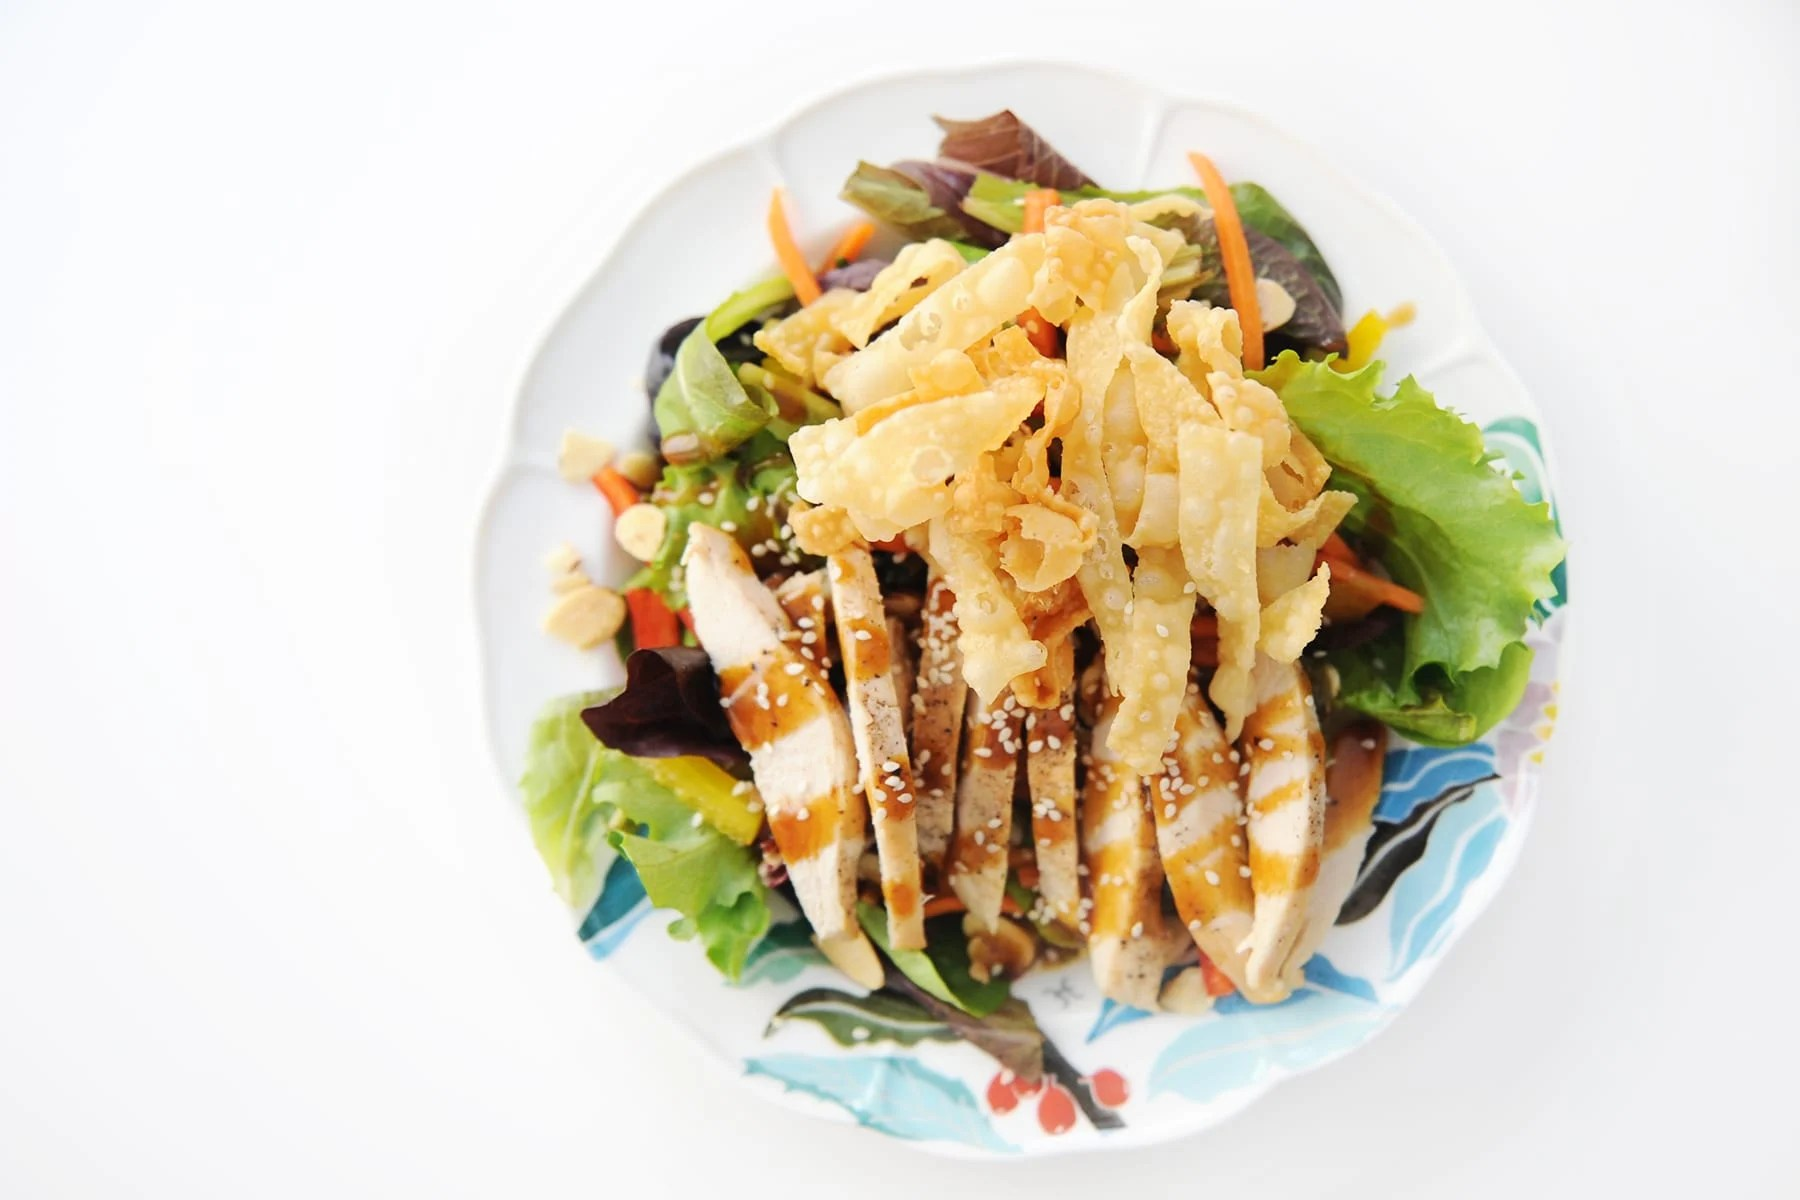 nordstrom cafe salad recipes